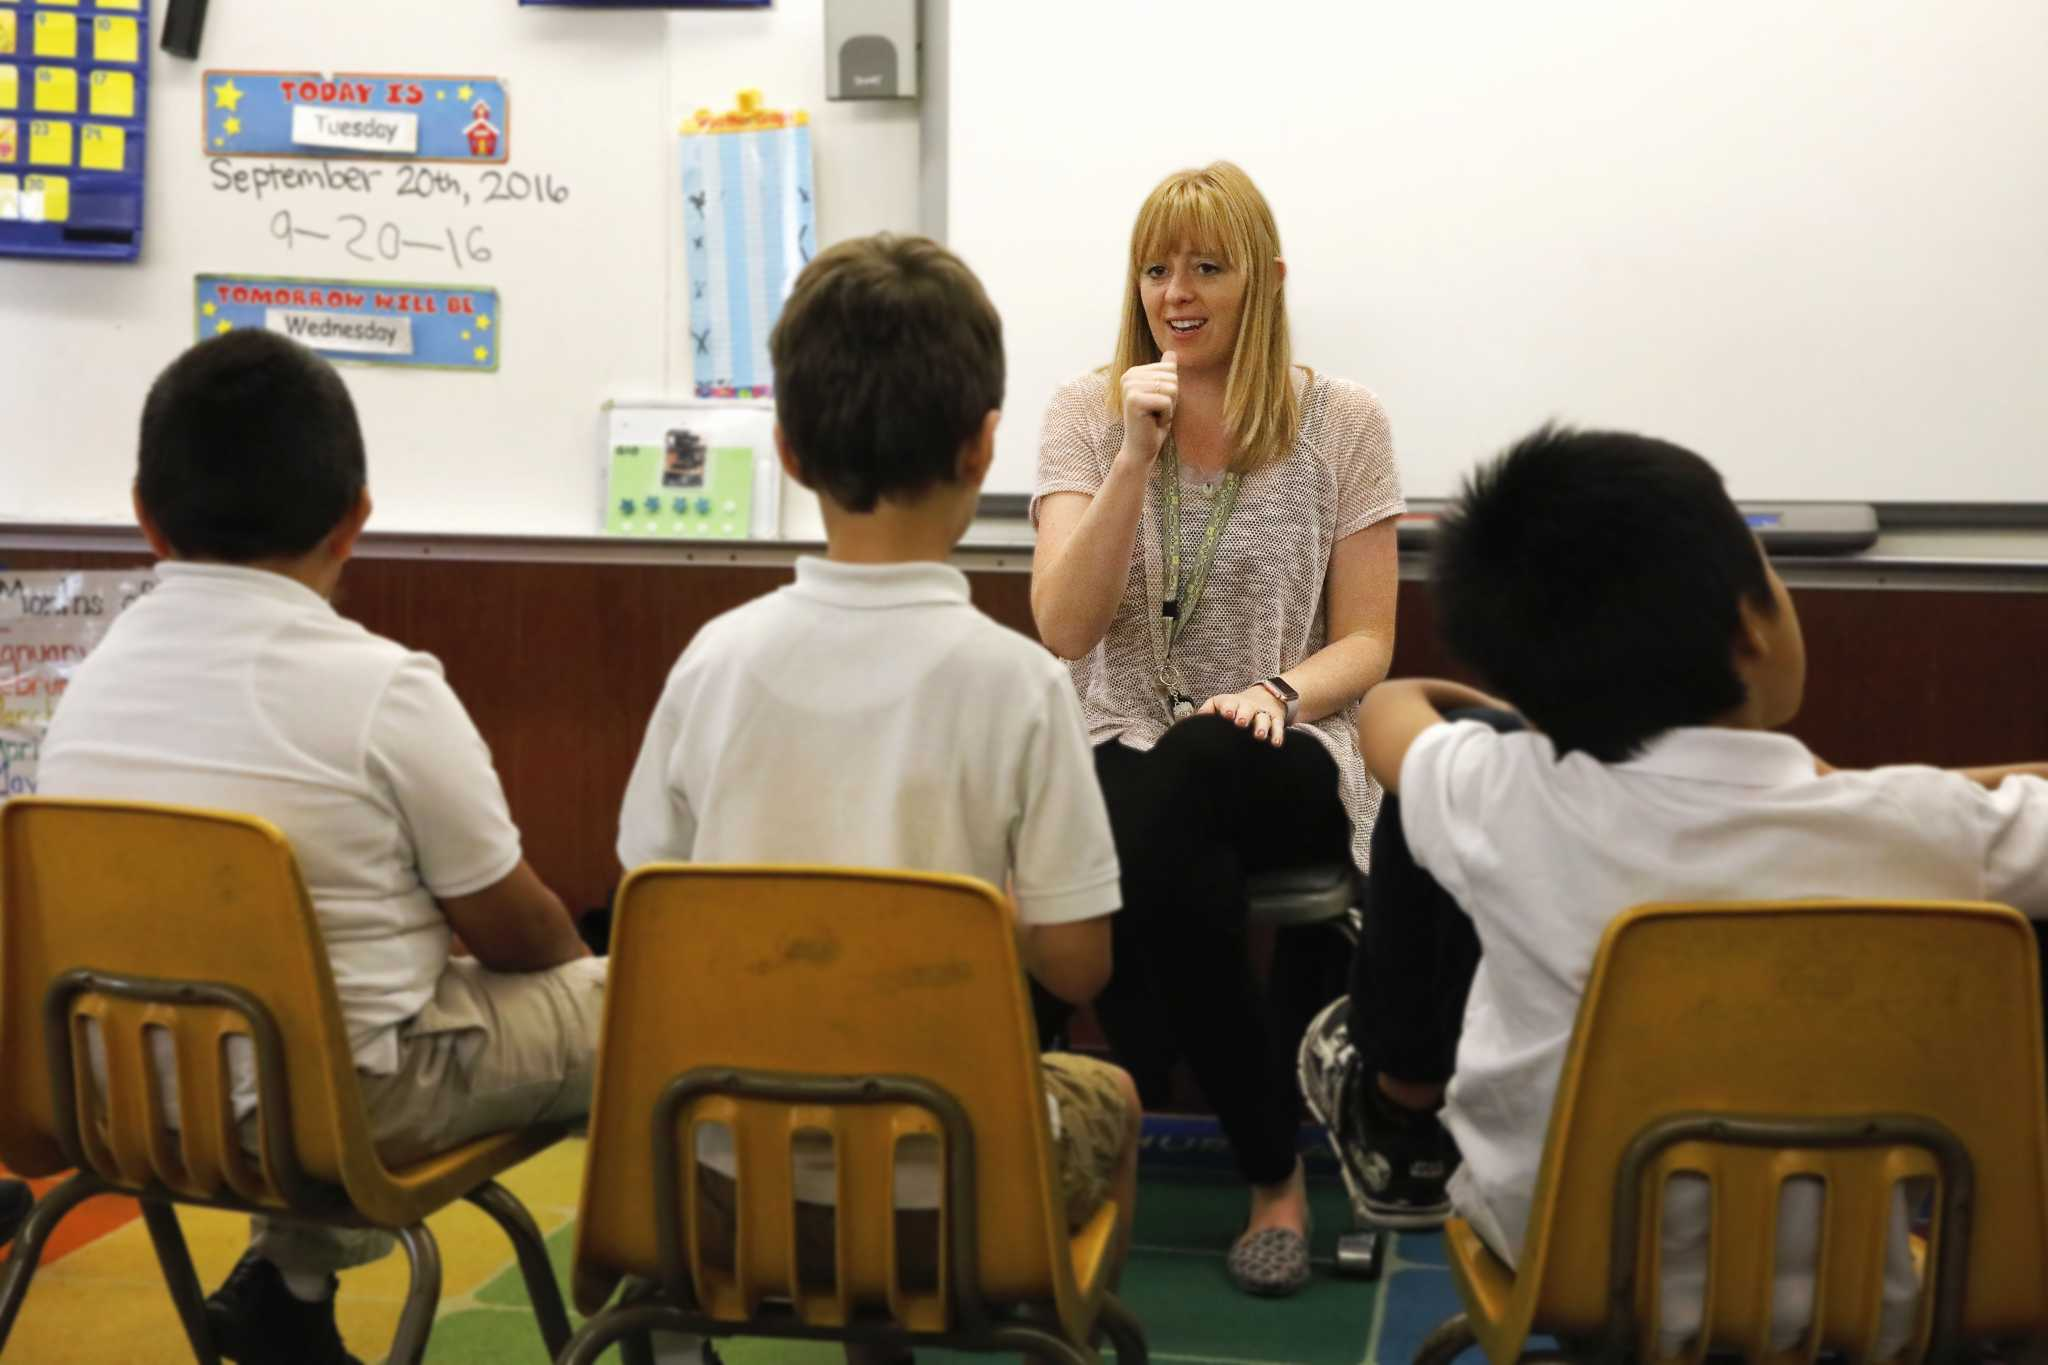 Kayla Kenton, a graduate of SF State's Moderate Severe Special Education program, uses sign language to communicate with children with autism during their morning sing-along at Junipero Serra Elementary School in Daly City, Calif. on Tuesday, Sept. 20, 2016.